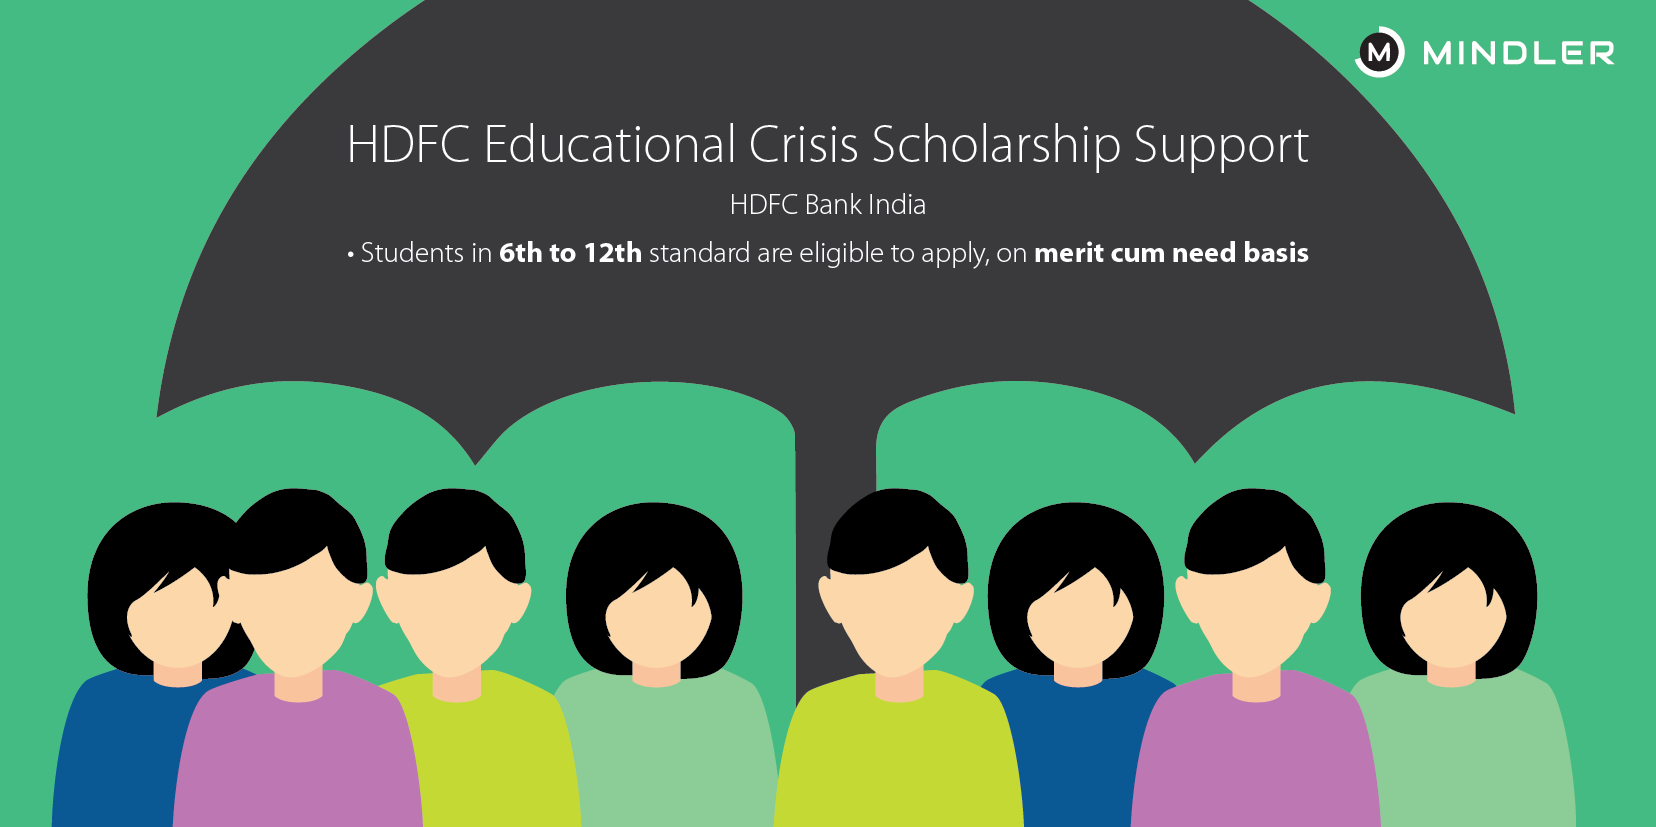 HDFC-Educational-Crisis-Scholarship-Support